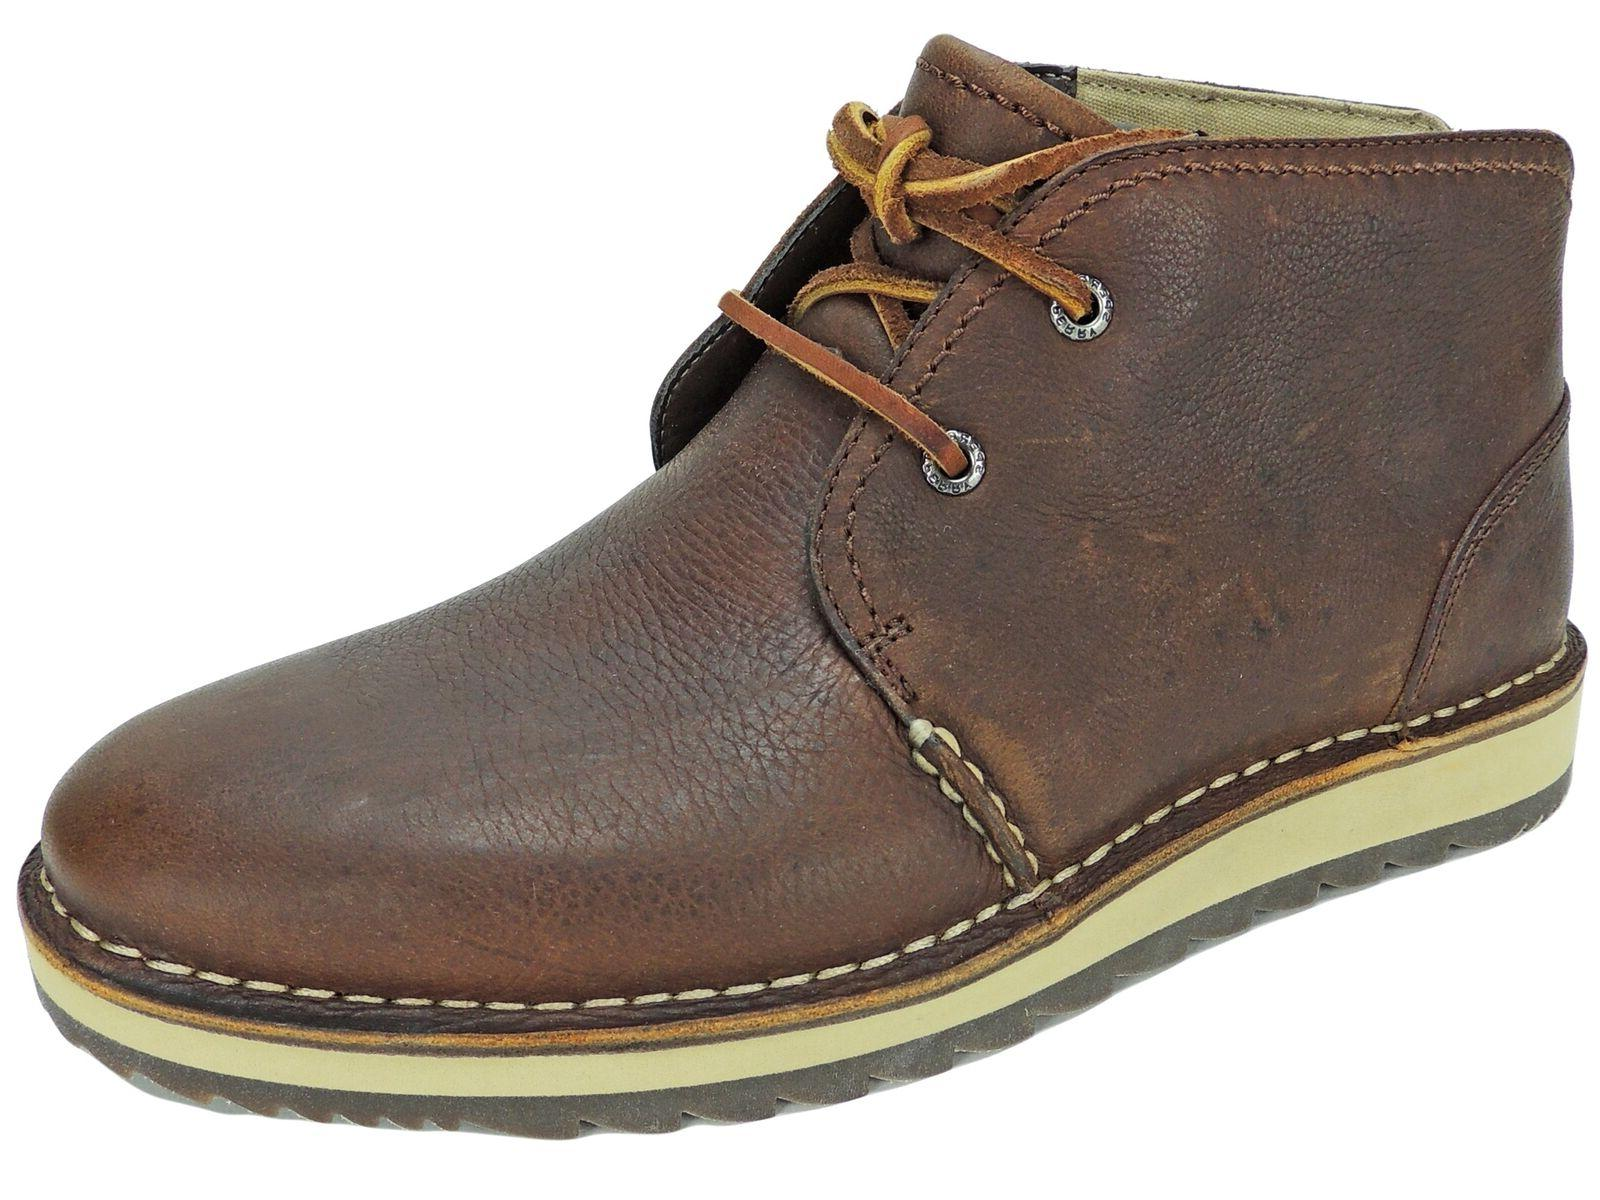 Sperry Top-Sider Men's Dockyard Chukka Boots Brown Leather S